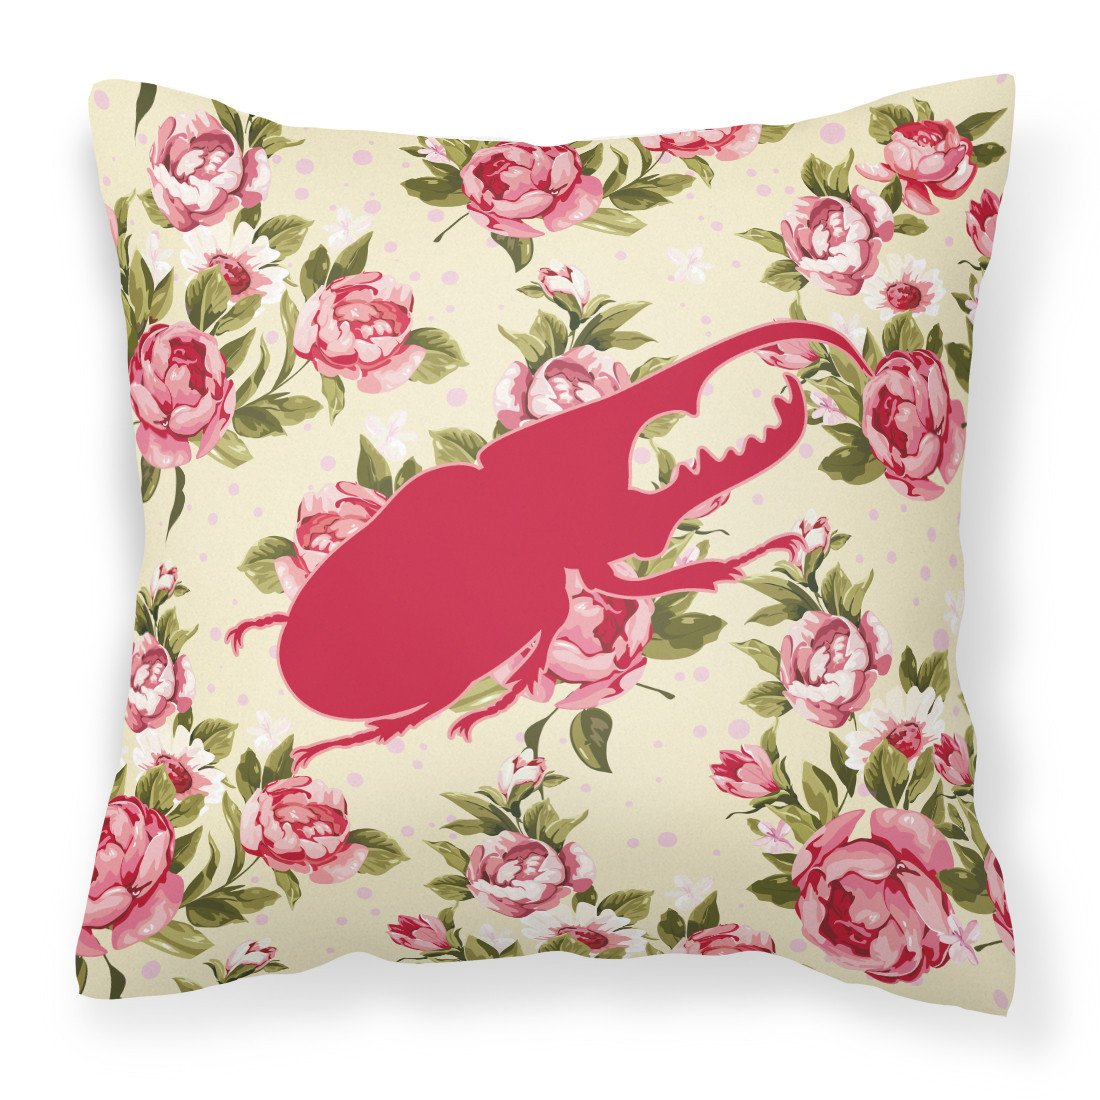 Beetle Shabby Chic Yellow Roses  Fabric Decorative Pillow BB1056-RS-YW-PW1414 - the-store.com